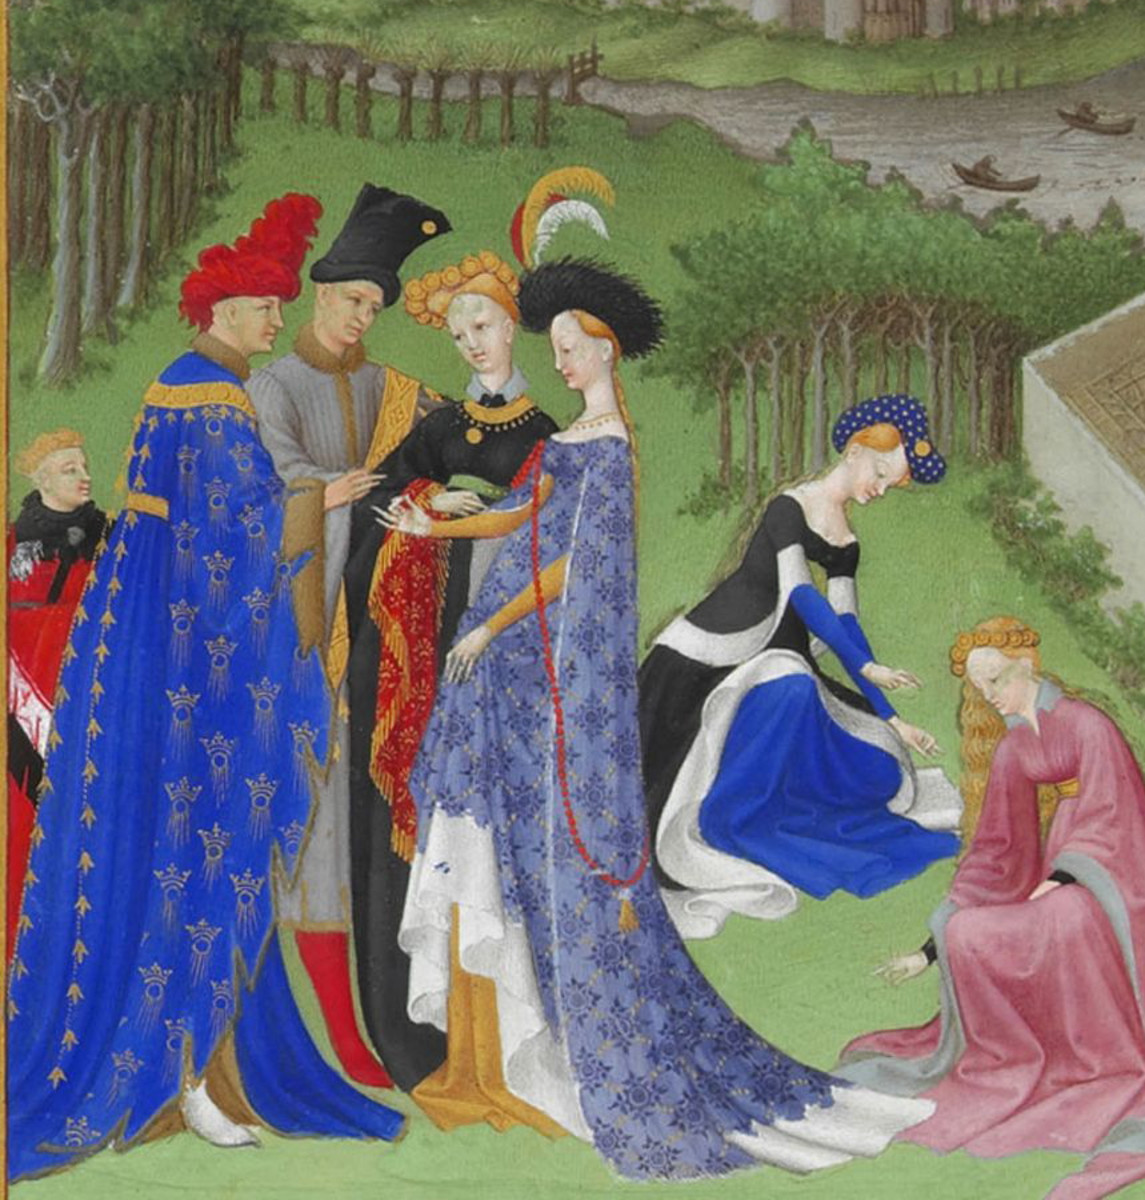 fashionhistoryofthehighandlatemiddleagesclothingo-the11th-15thcentury